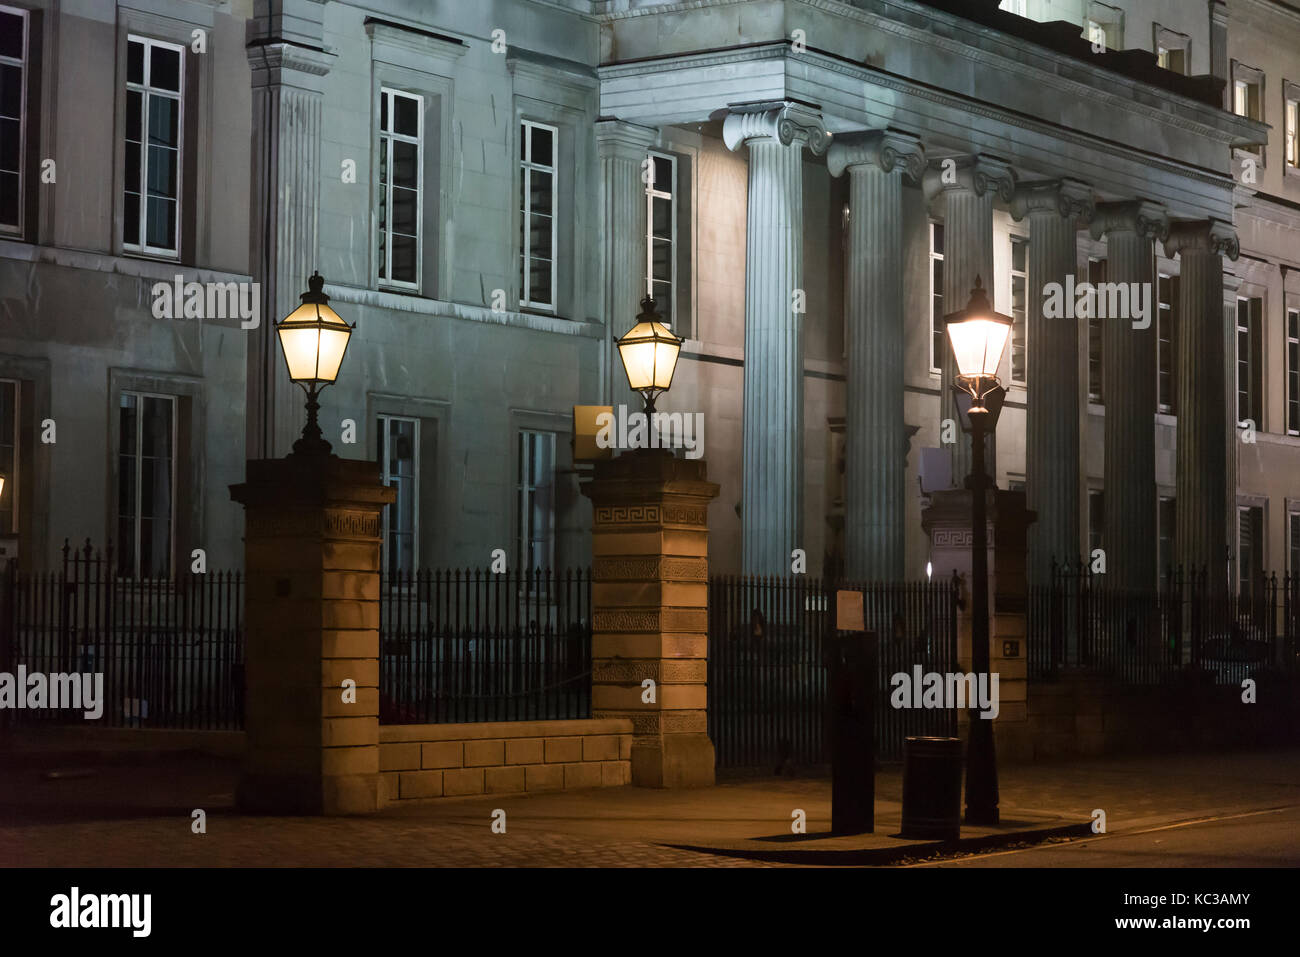 Royal College of Surgeons of England, Lincoln's Inn Fields, London, UK - Stock Image